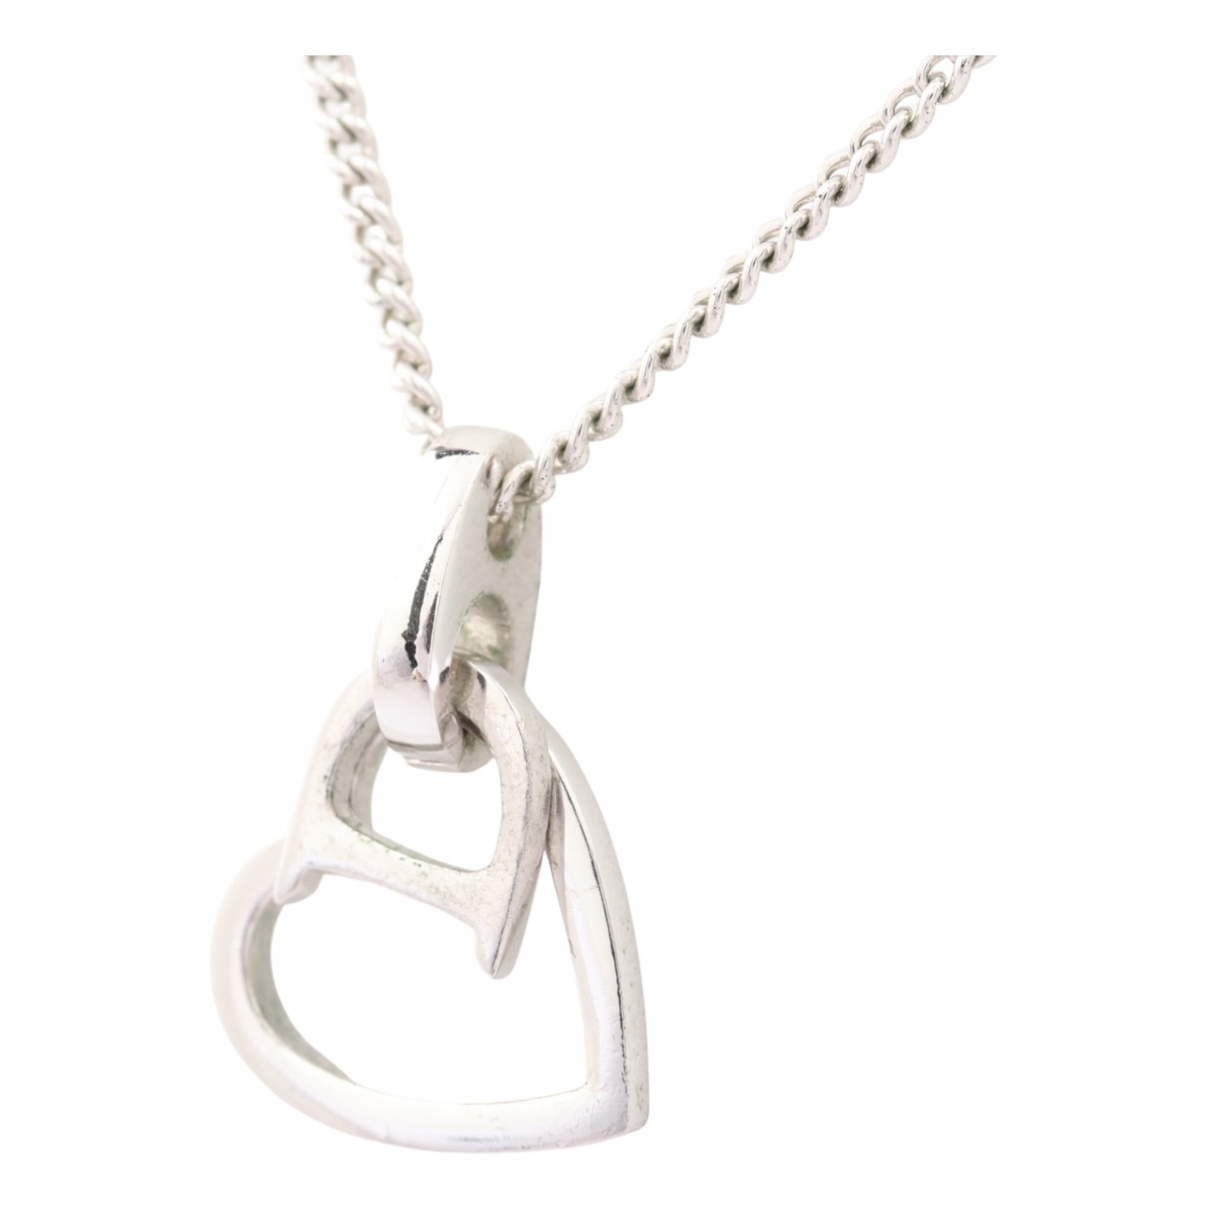 Dior N Silver Silver necklace for Women N